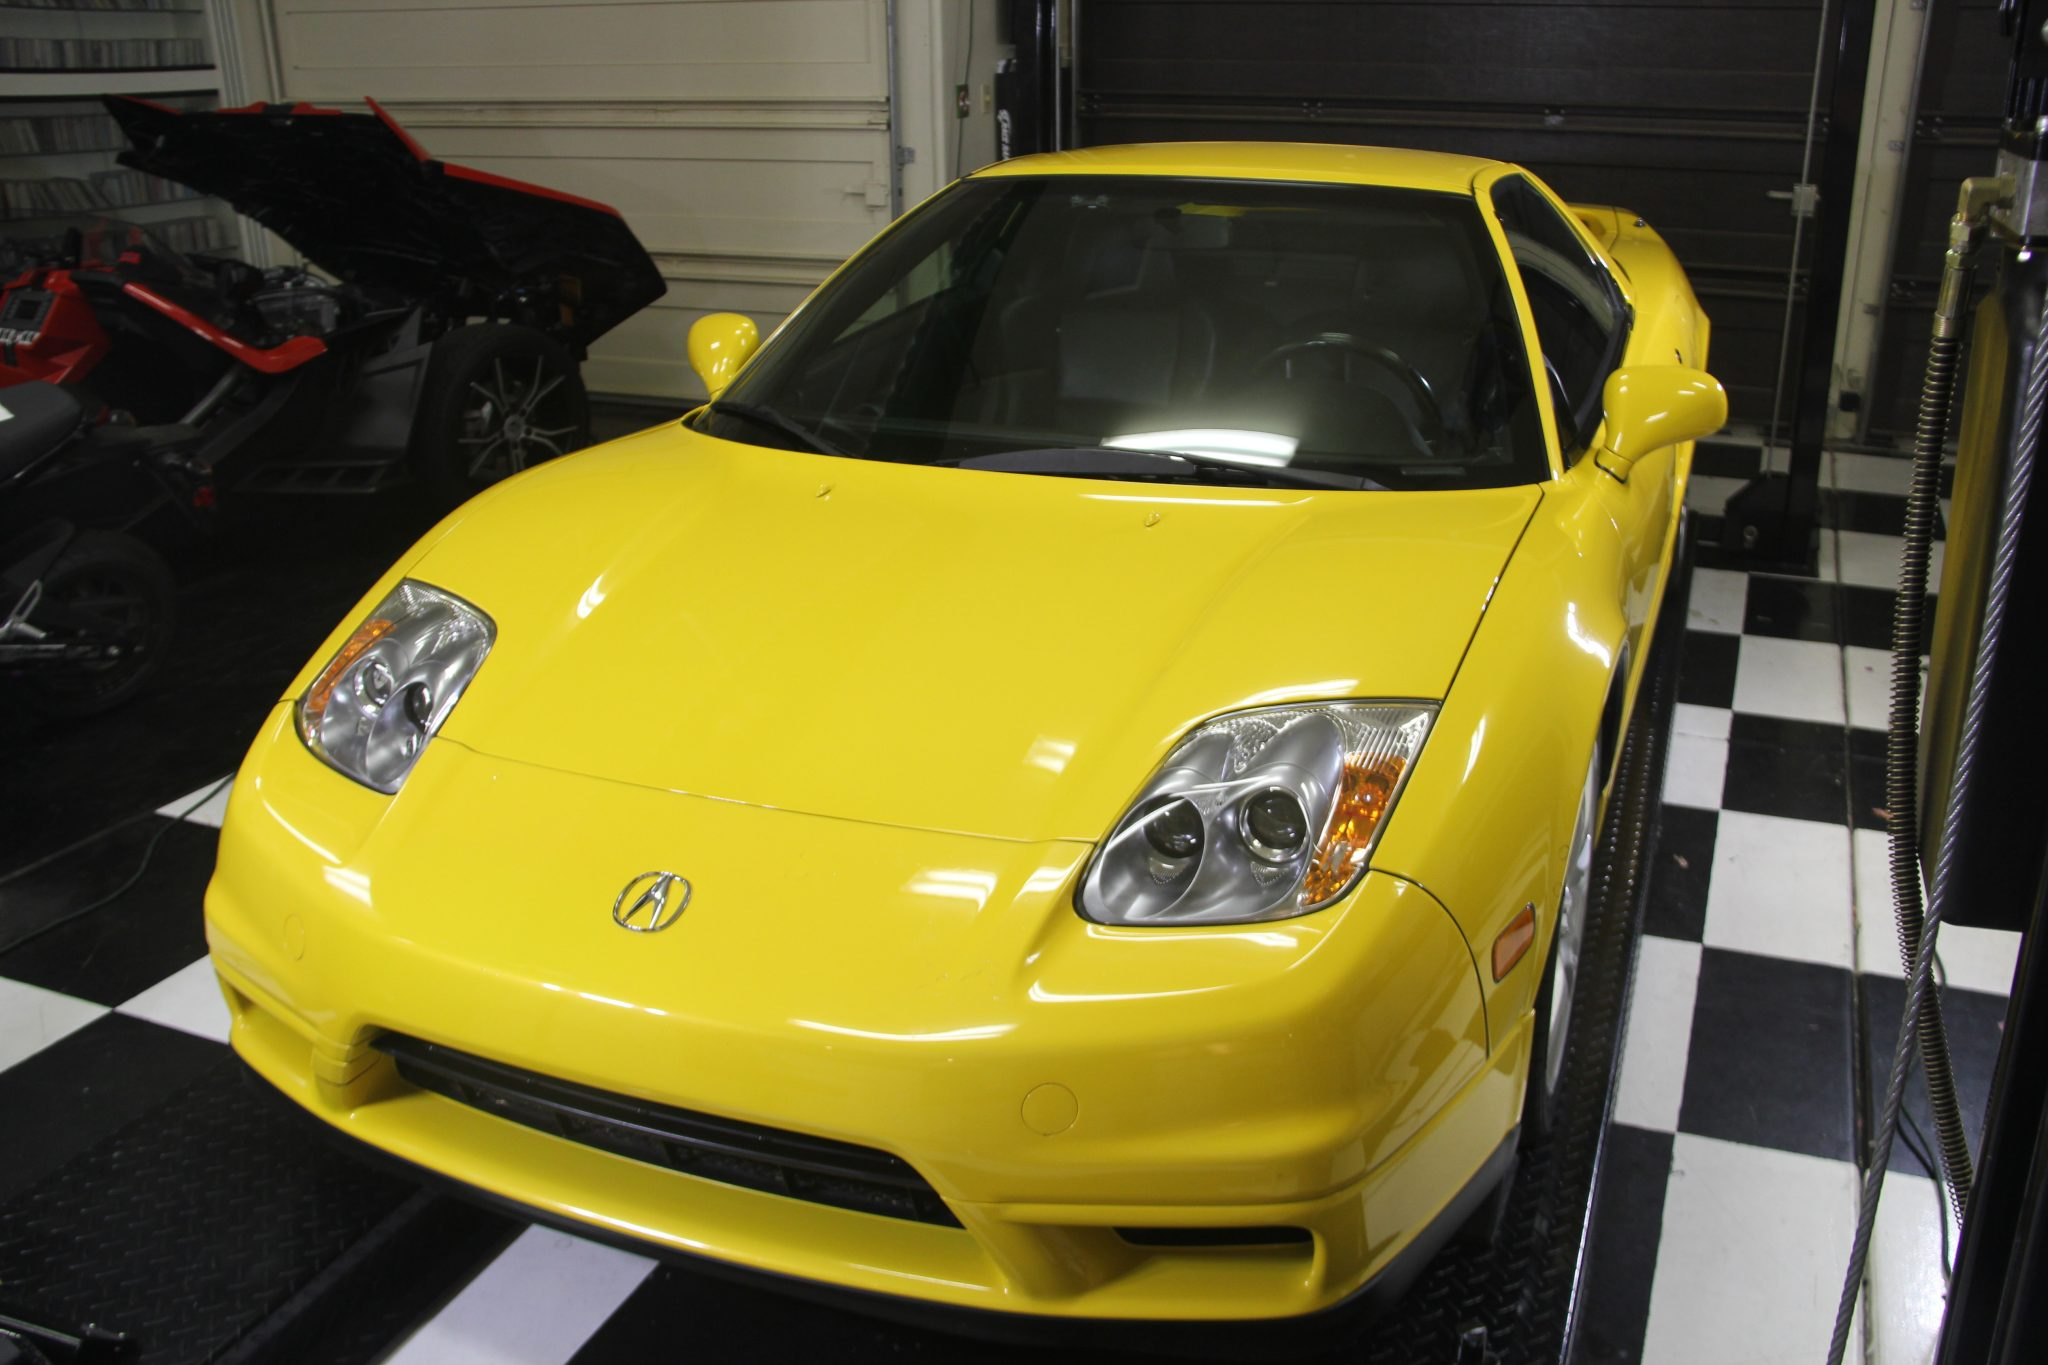 Acura NSX in the garage - yellow